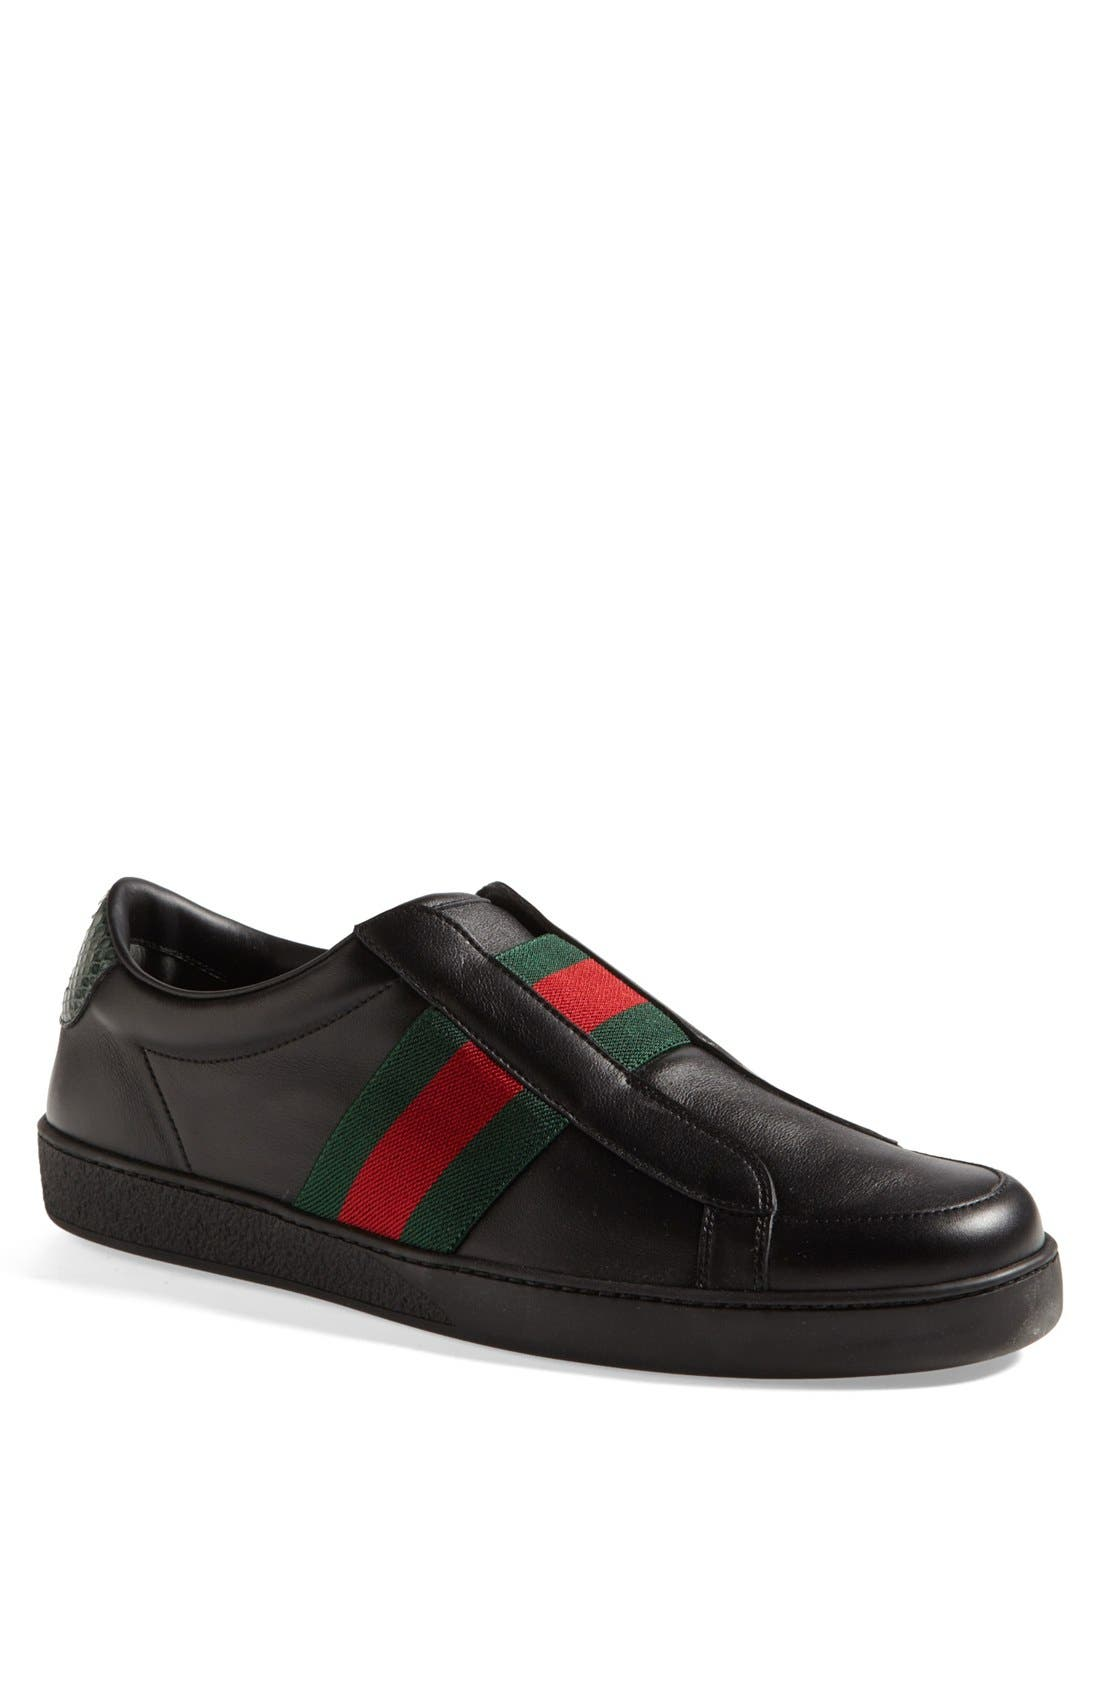 Alternate Image 1 Selected - Gucci 'Brooklyn' Slip-On